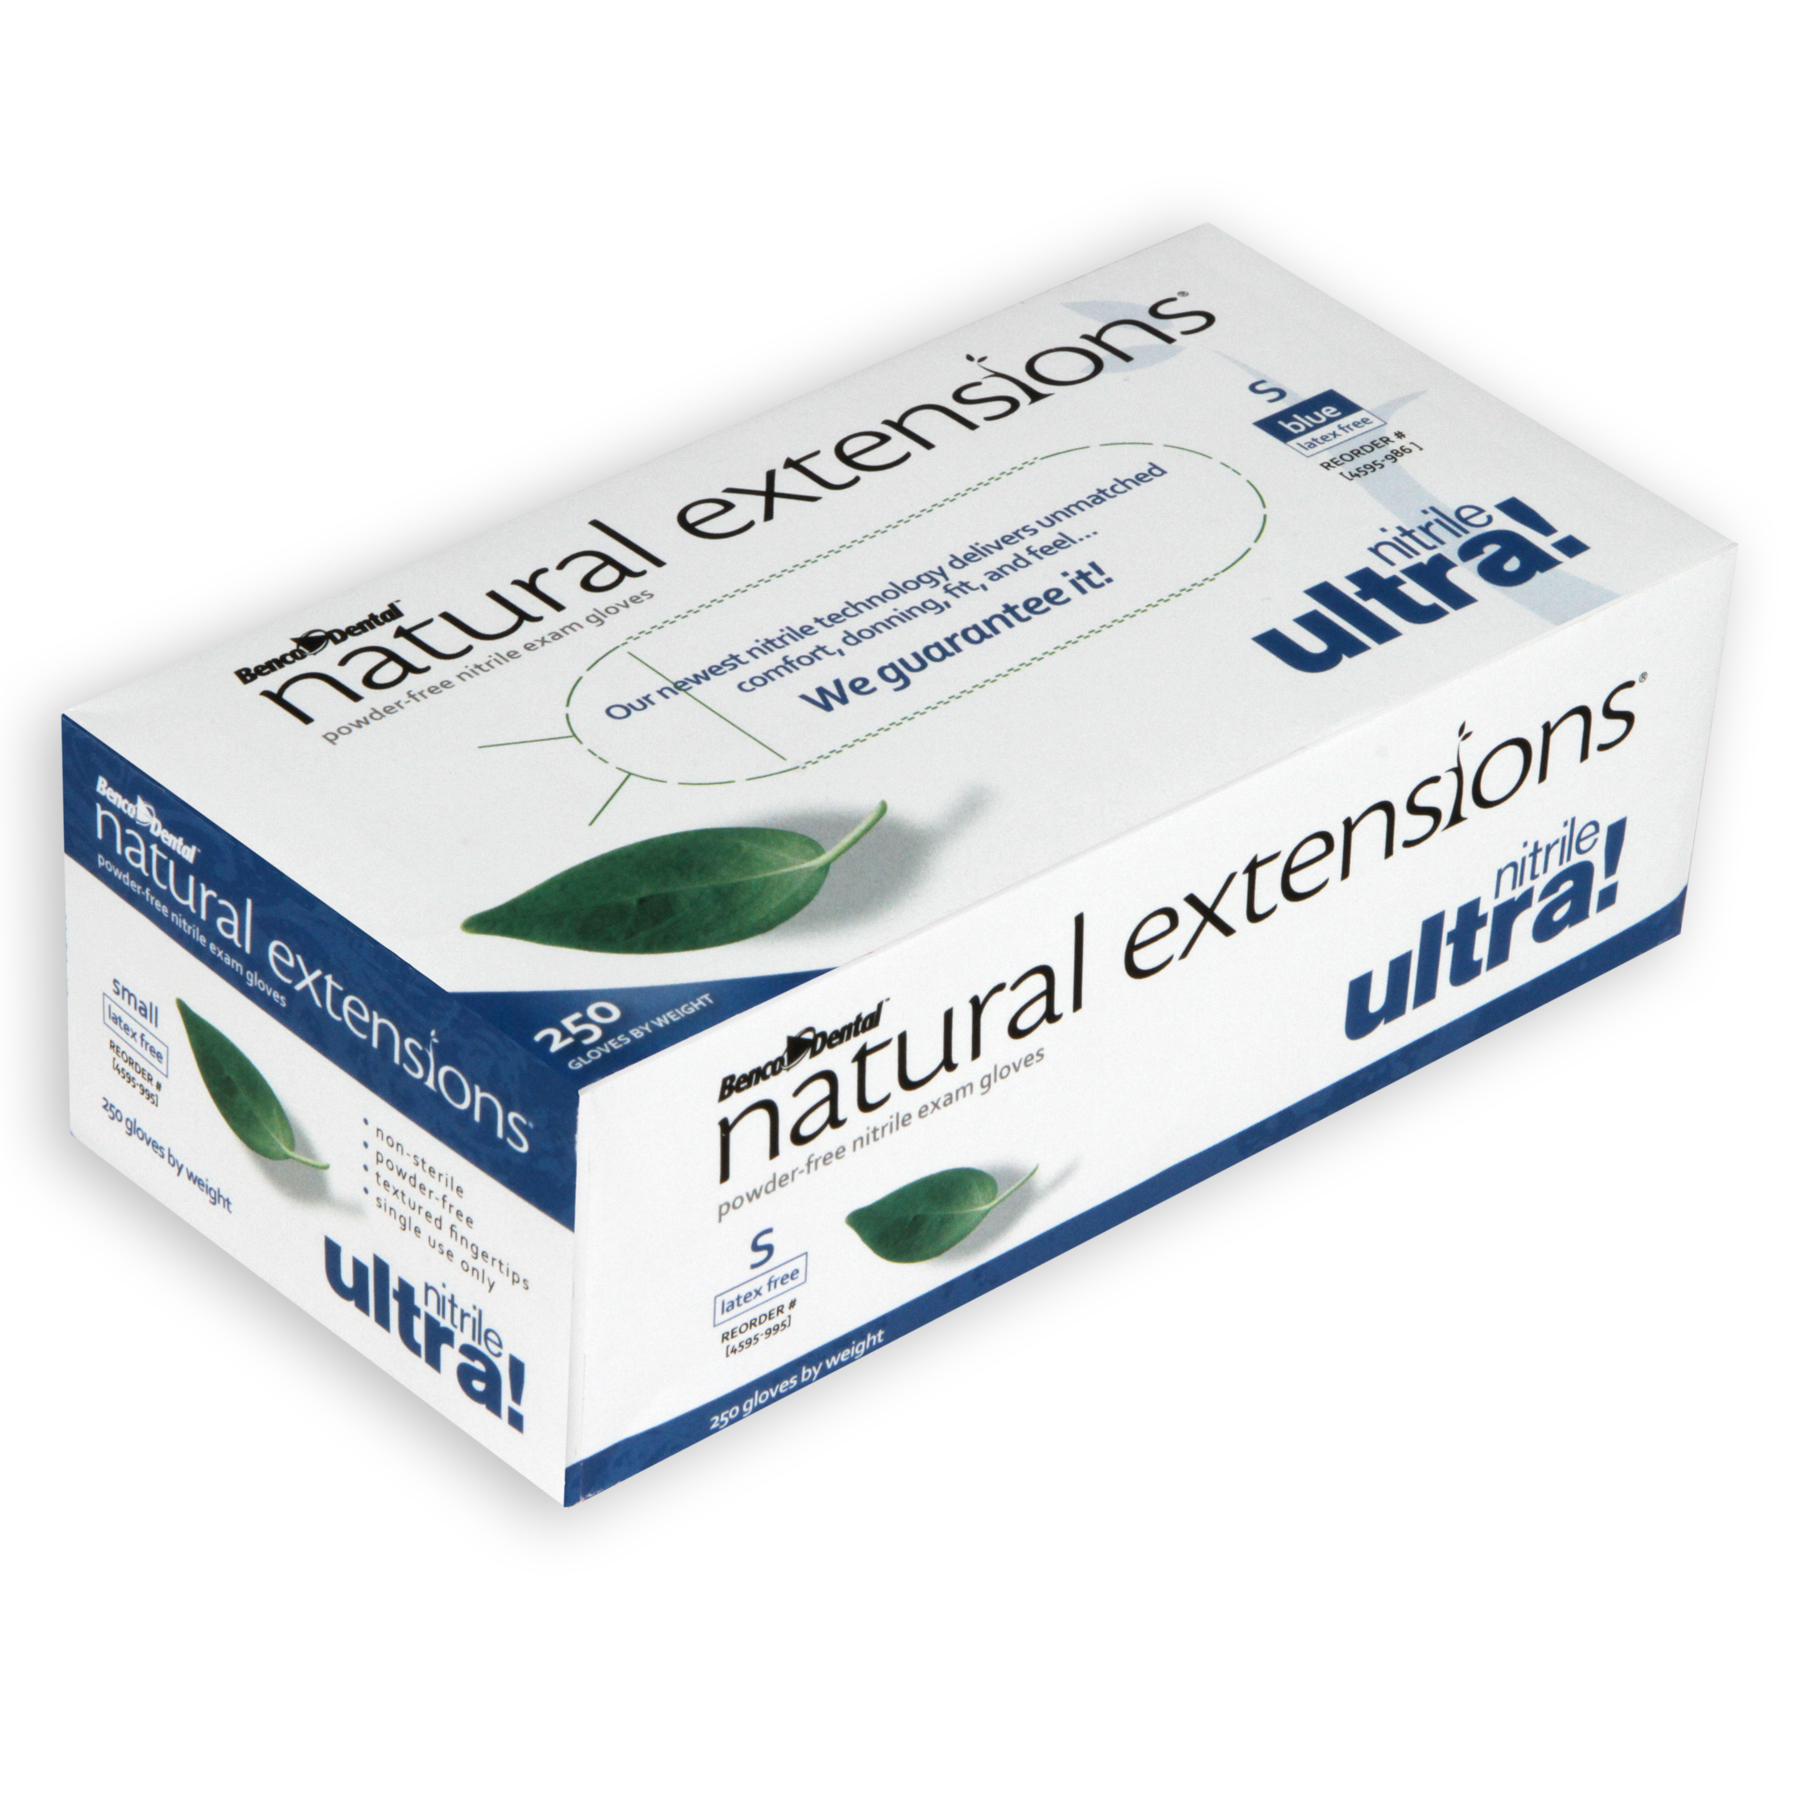 Natural extensions nitrile ultra!